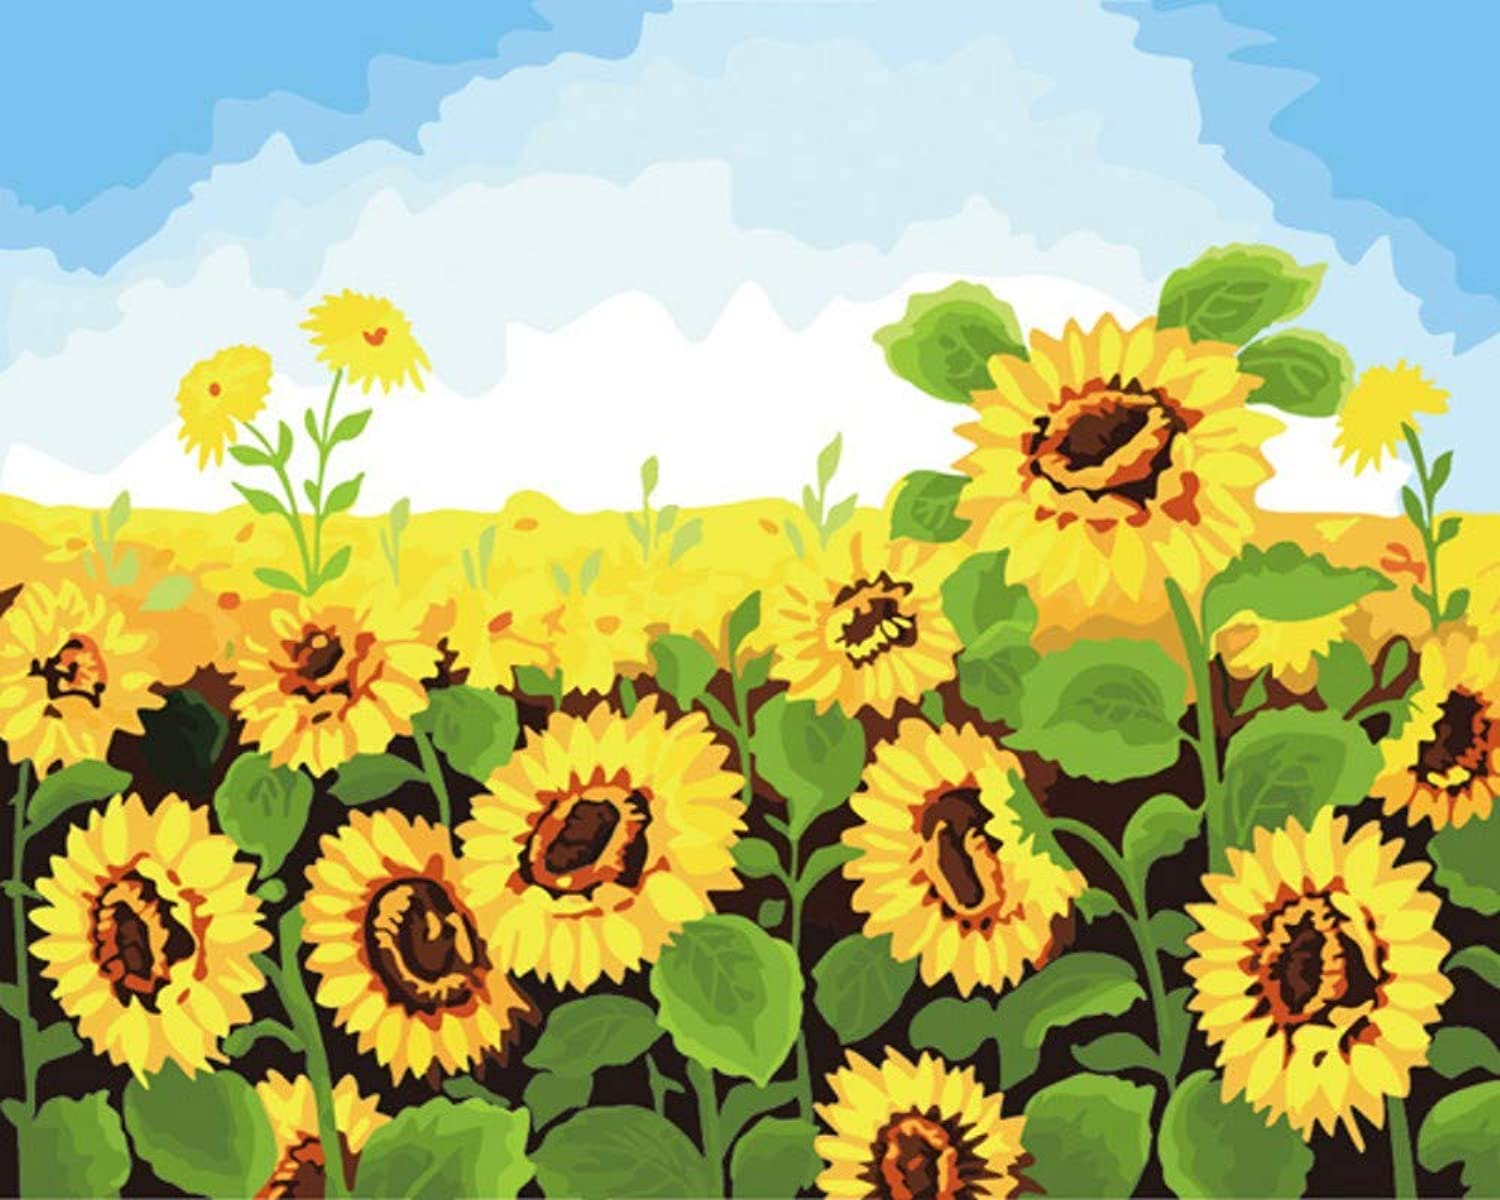 DIY Digital Painting Landscape Painting Painting Mural Painting Abstract Painting Plant Sunflower Frameless, 40x50cm